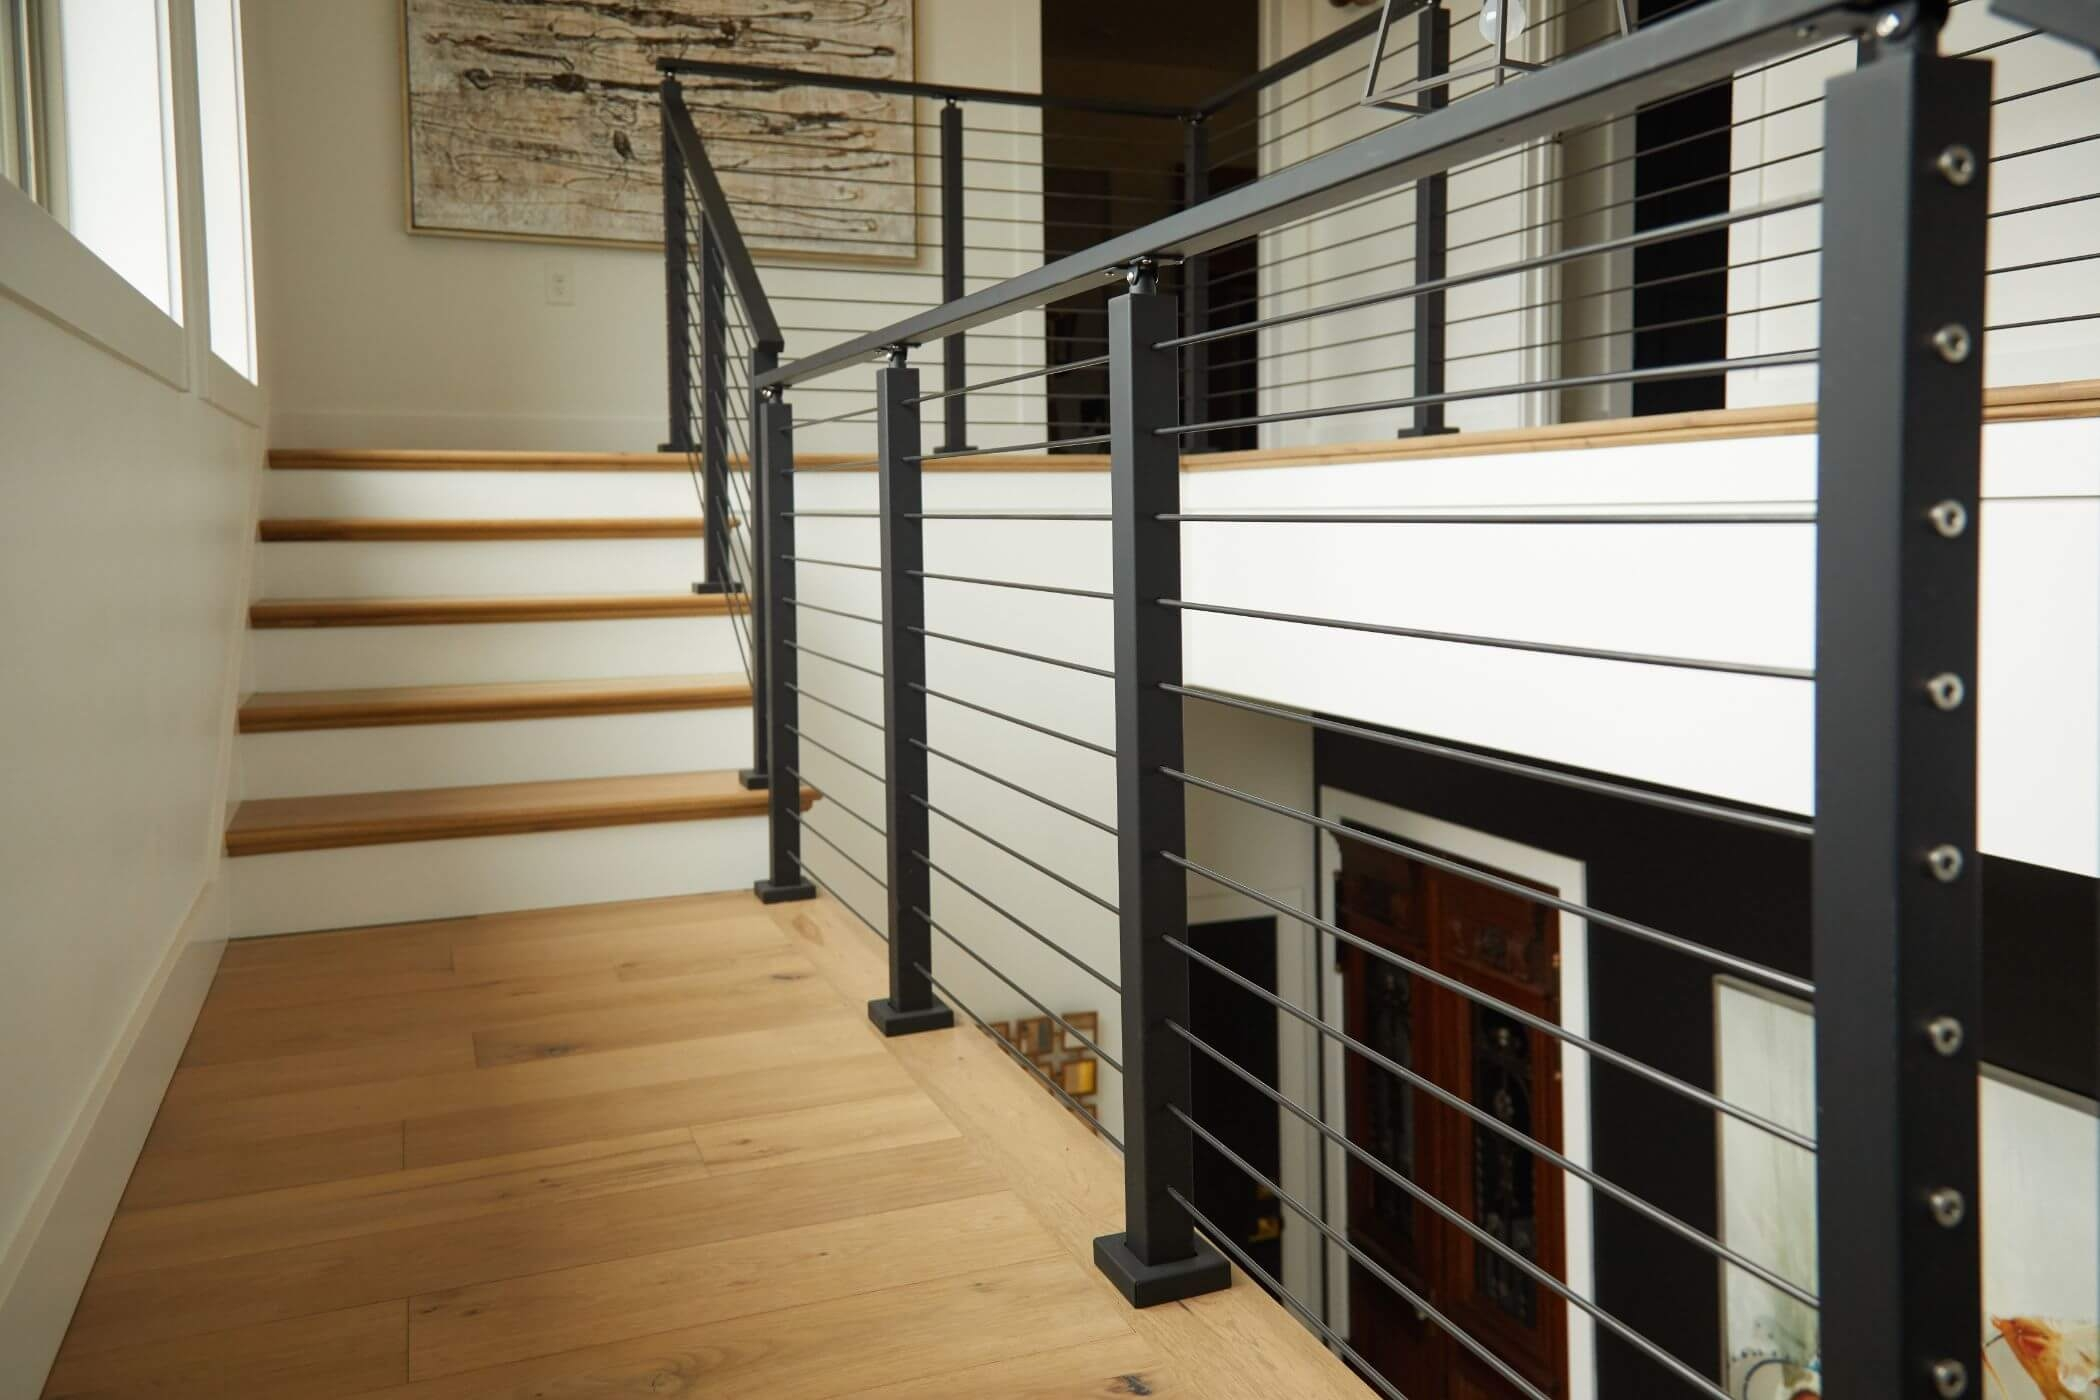 Stainless Steel Railing Rod Stair Railing Kits Posts Parts | Safety Handrails For Stairs | Wood Outdoor Hand | Baby Proofing | Wall | Rake | Front